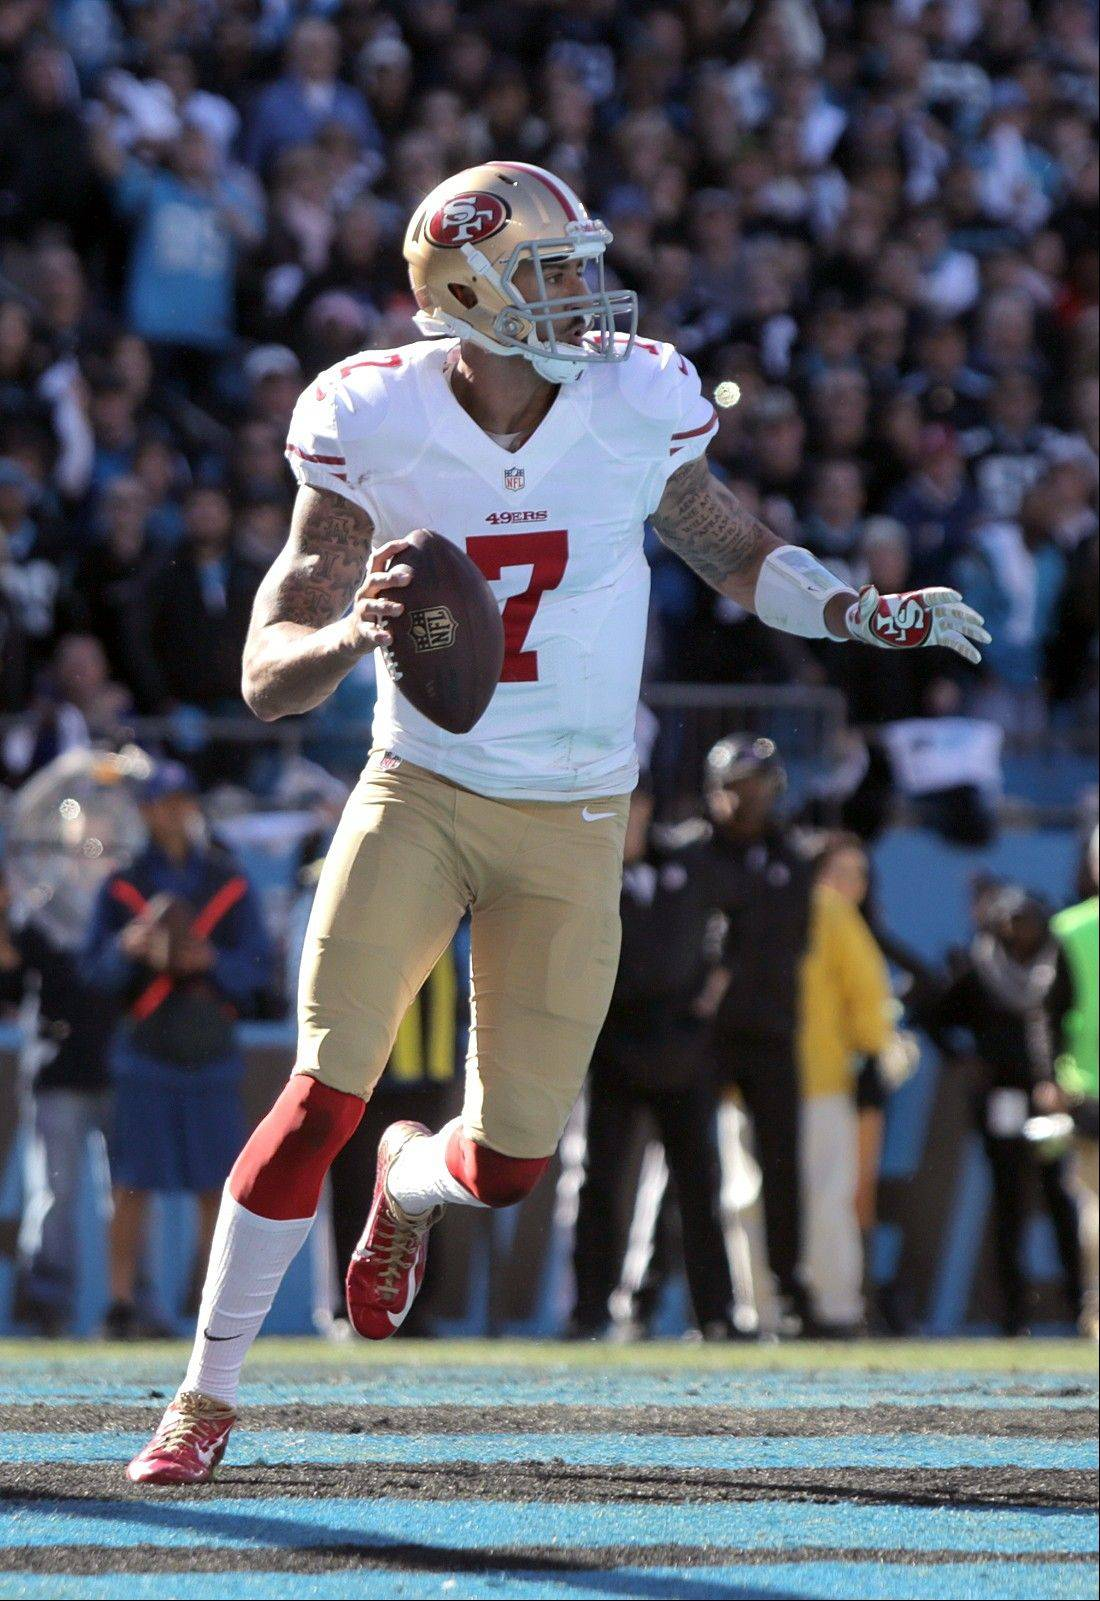 Although he beat the Seahawks in San Francisco, the 49ers quarterback Colin Kaepernick have struggled on their last two road trips to Seattle,committing seven turnovers en route to being outscored 71-16 in those games.